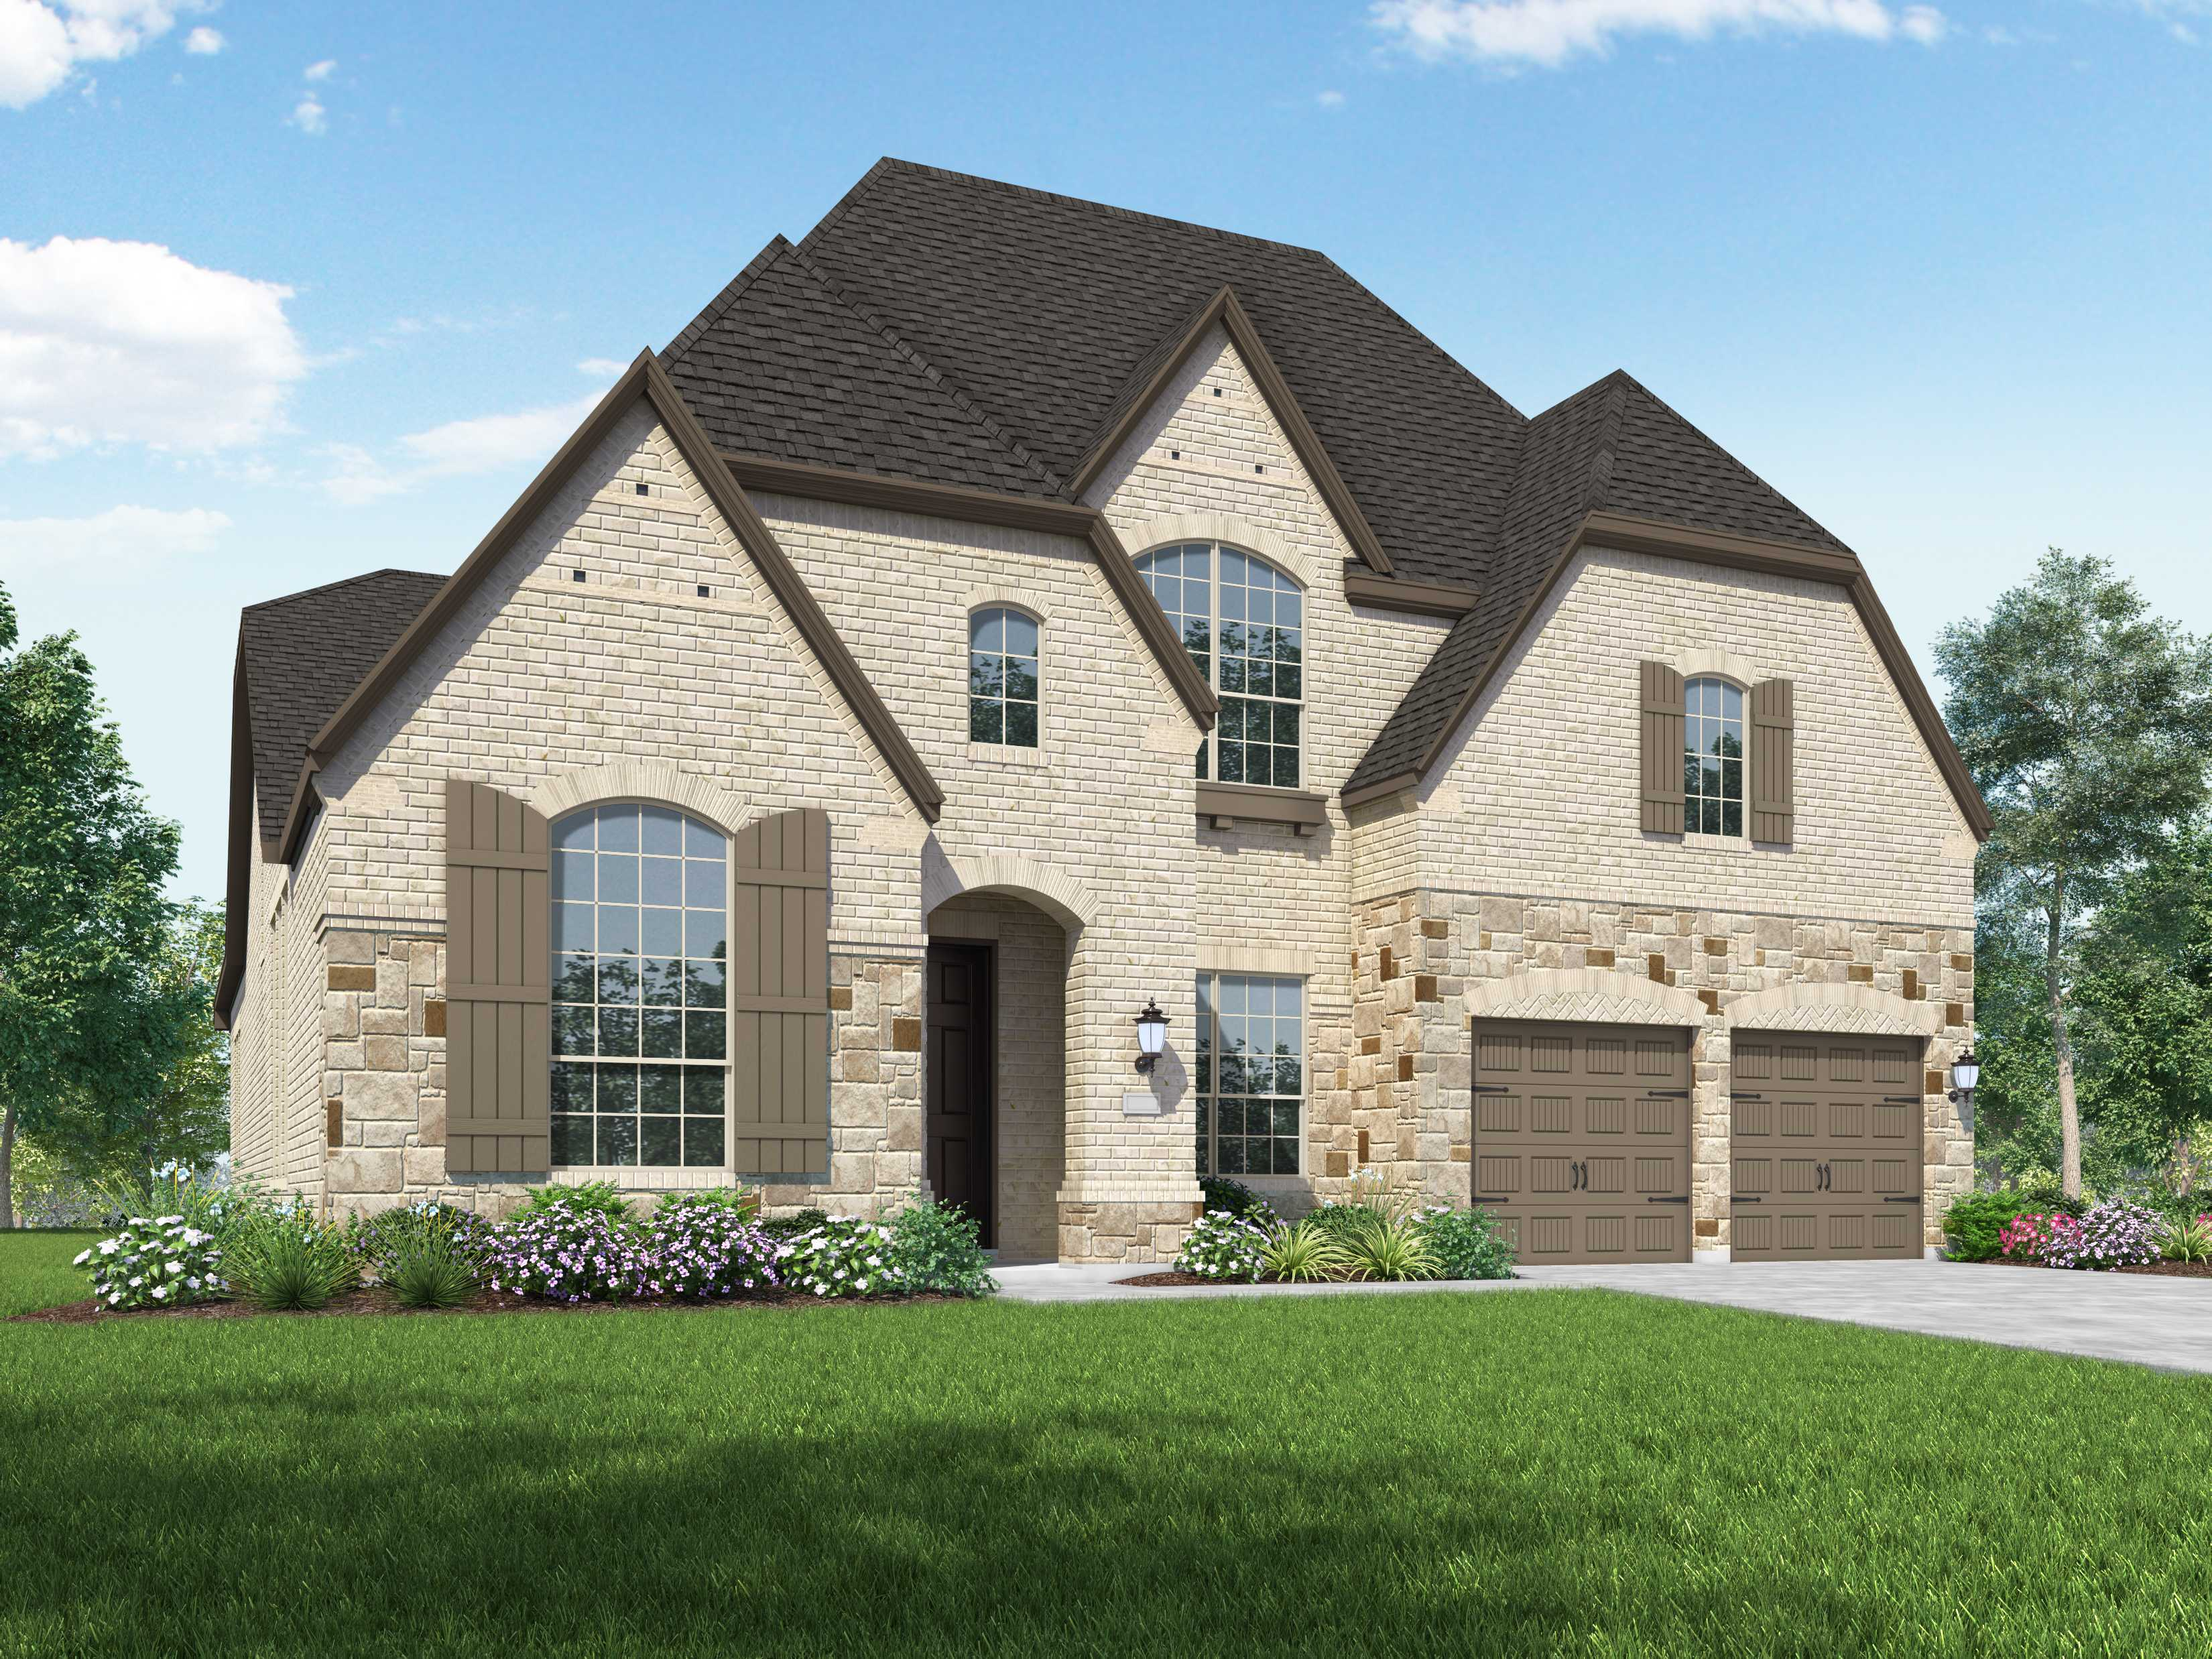 new home plan 246h in san antonio tx 78256 new home plan 246h in san antonio tx 78256